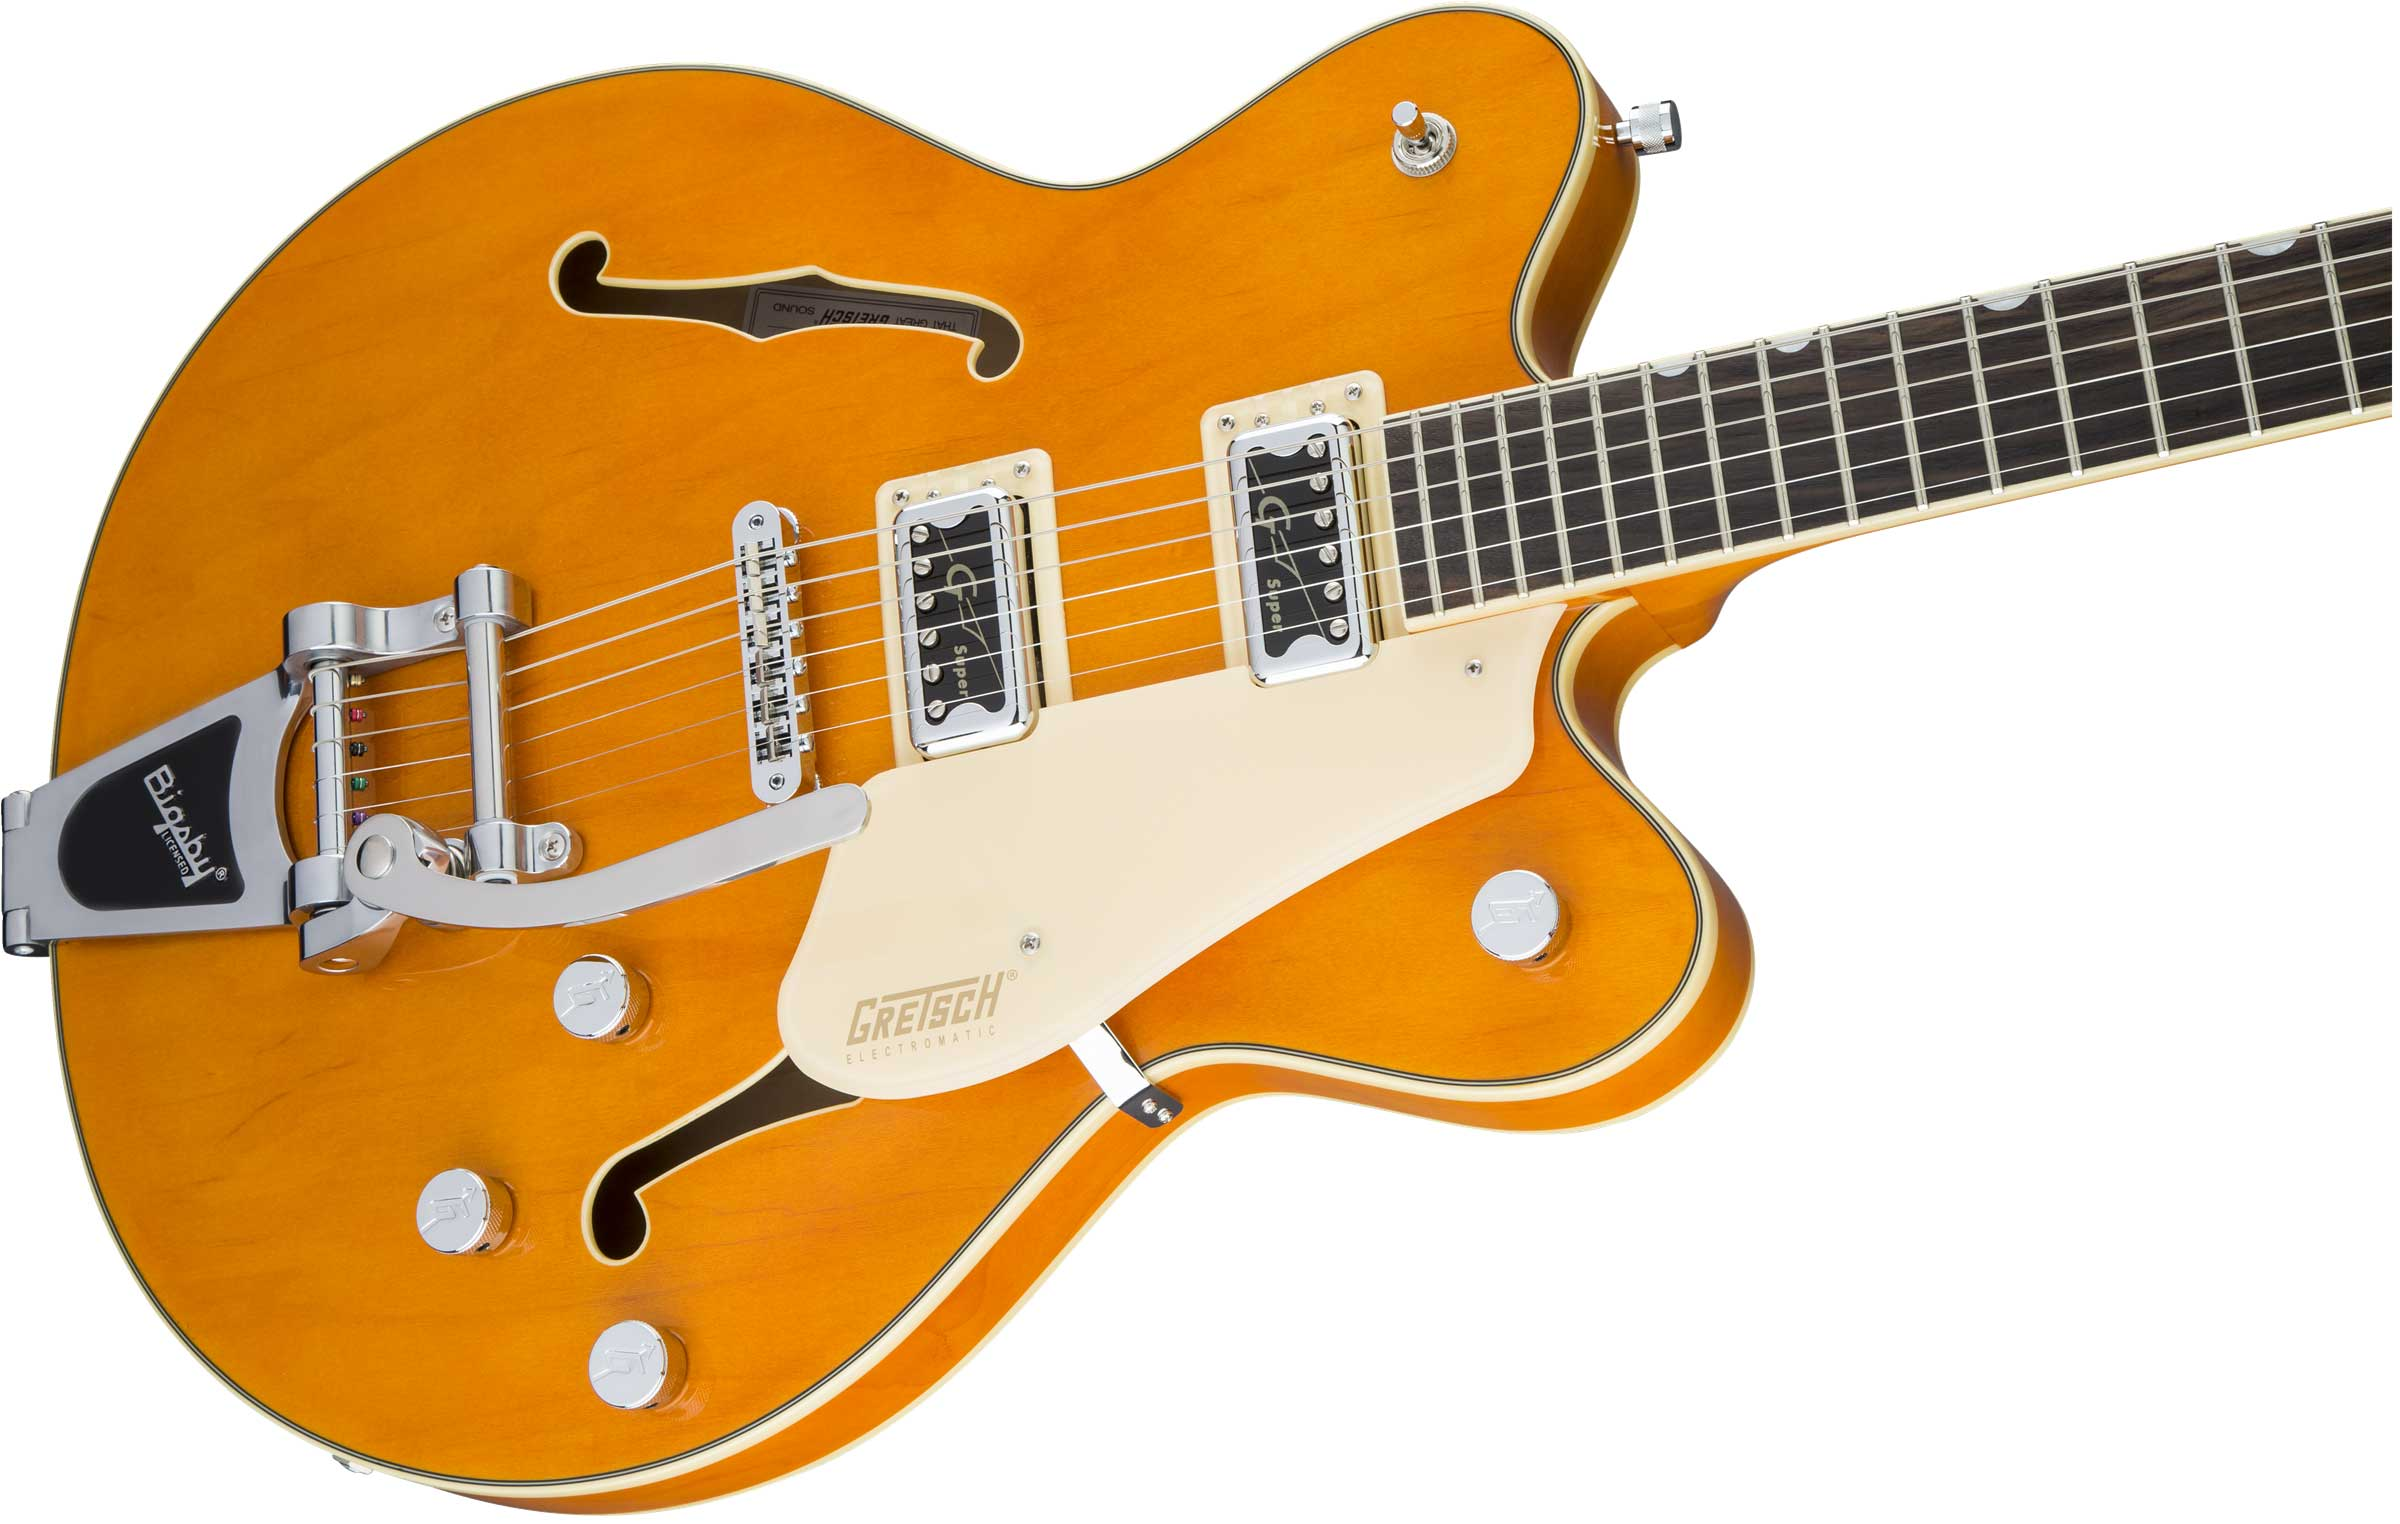 gretsch g5622t cb electromatic center block double cut with bigsby vintage orange katoomba music. Black Bedroom Furniture Sets. Home Design Ideas